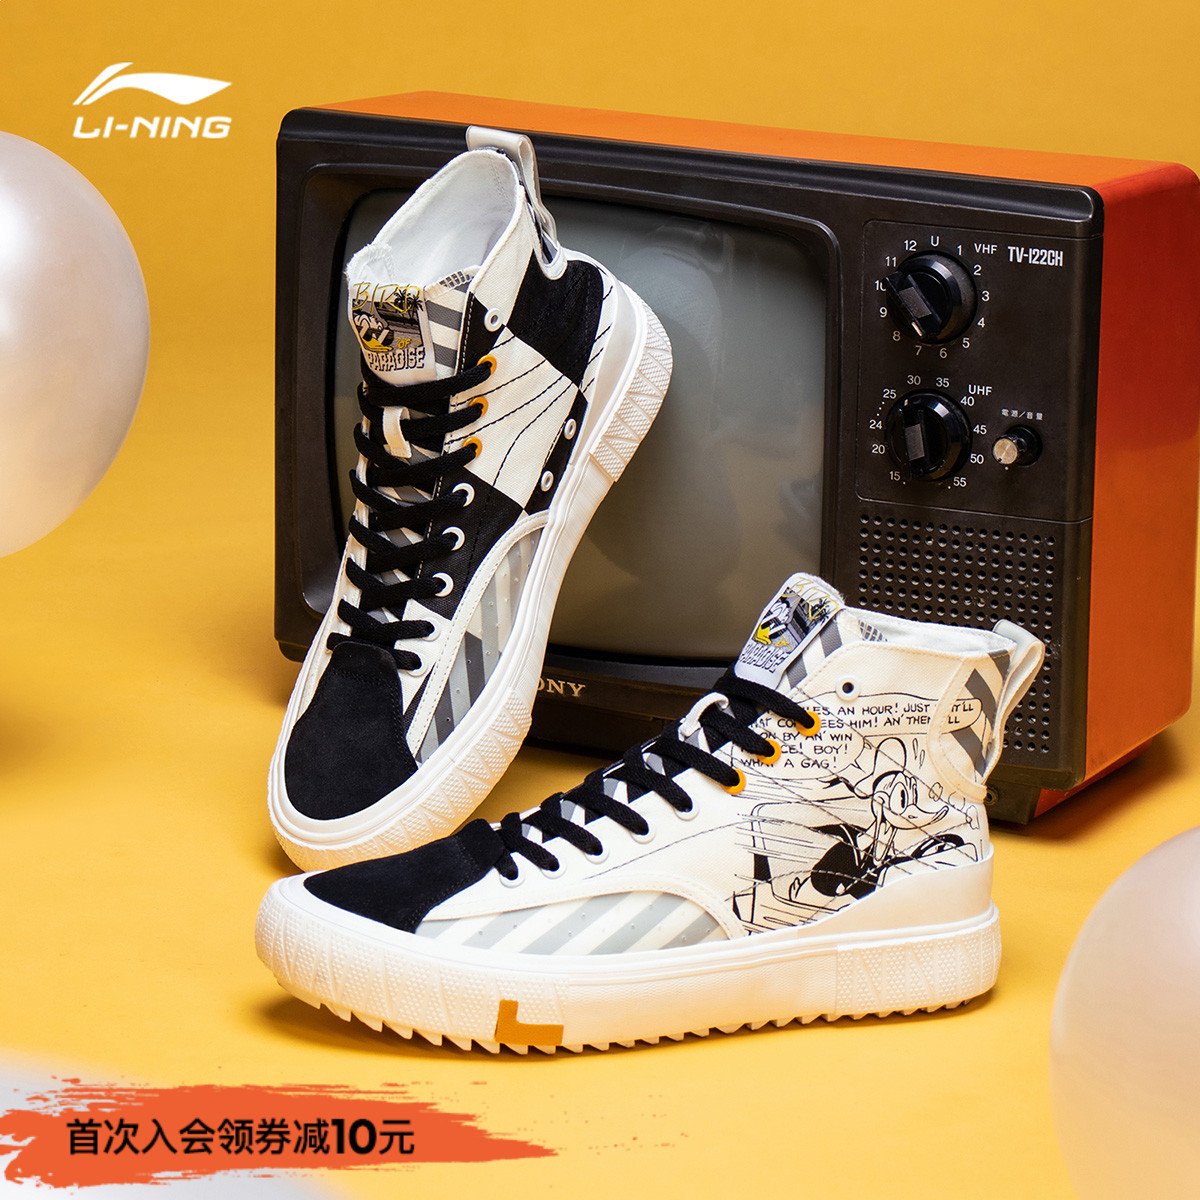 Li Ning canvas shoes men's shoes Disney joint 2021 casual shoes couple skateboard shoes high top sports shoes women's shoes